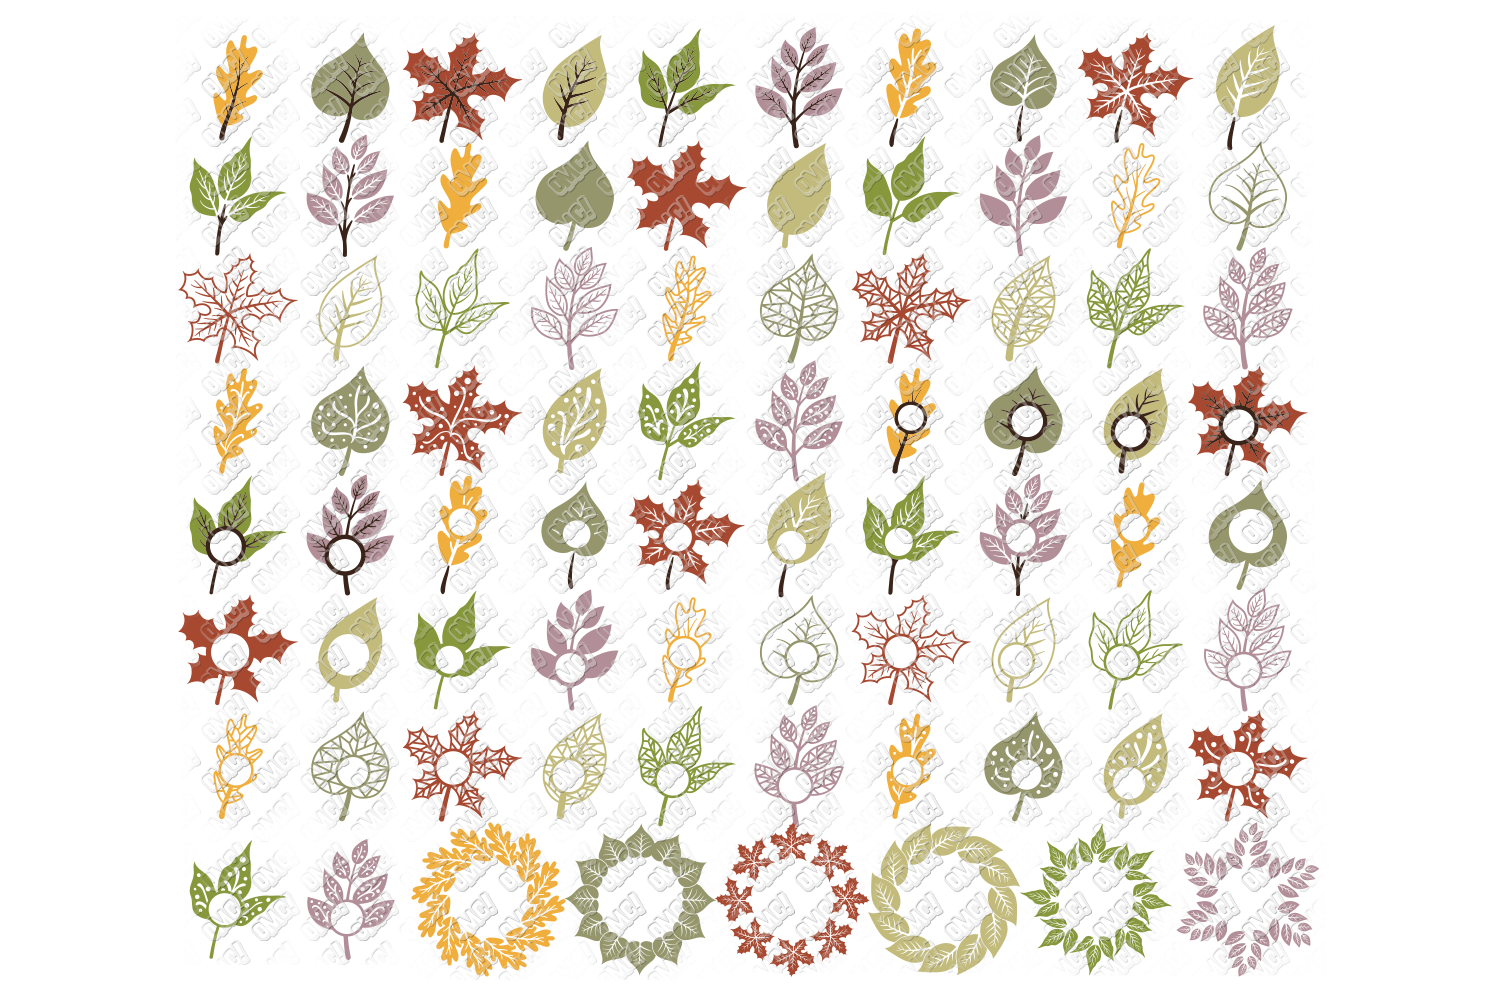 Leaf SVG Fall Leaves Autumn in SVG, DXF, PNG, EPS, JPEG example image 1